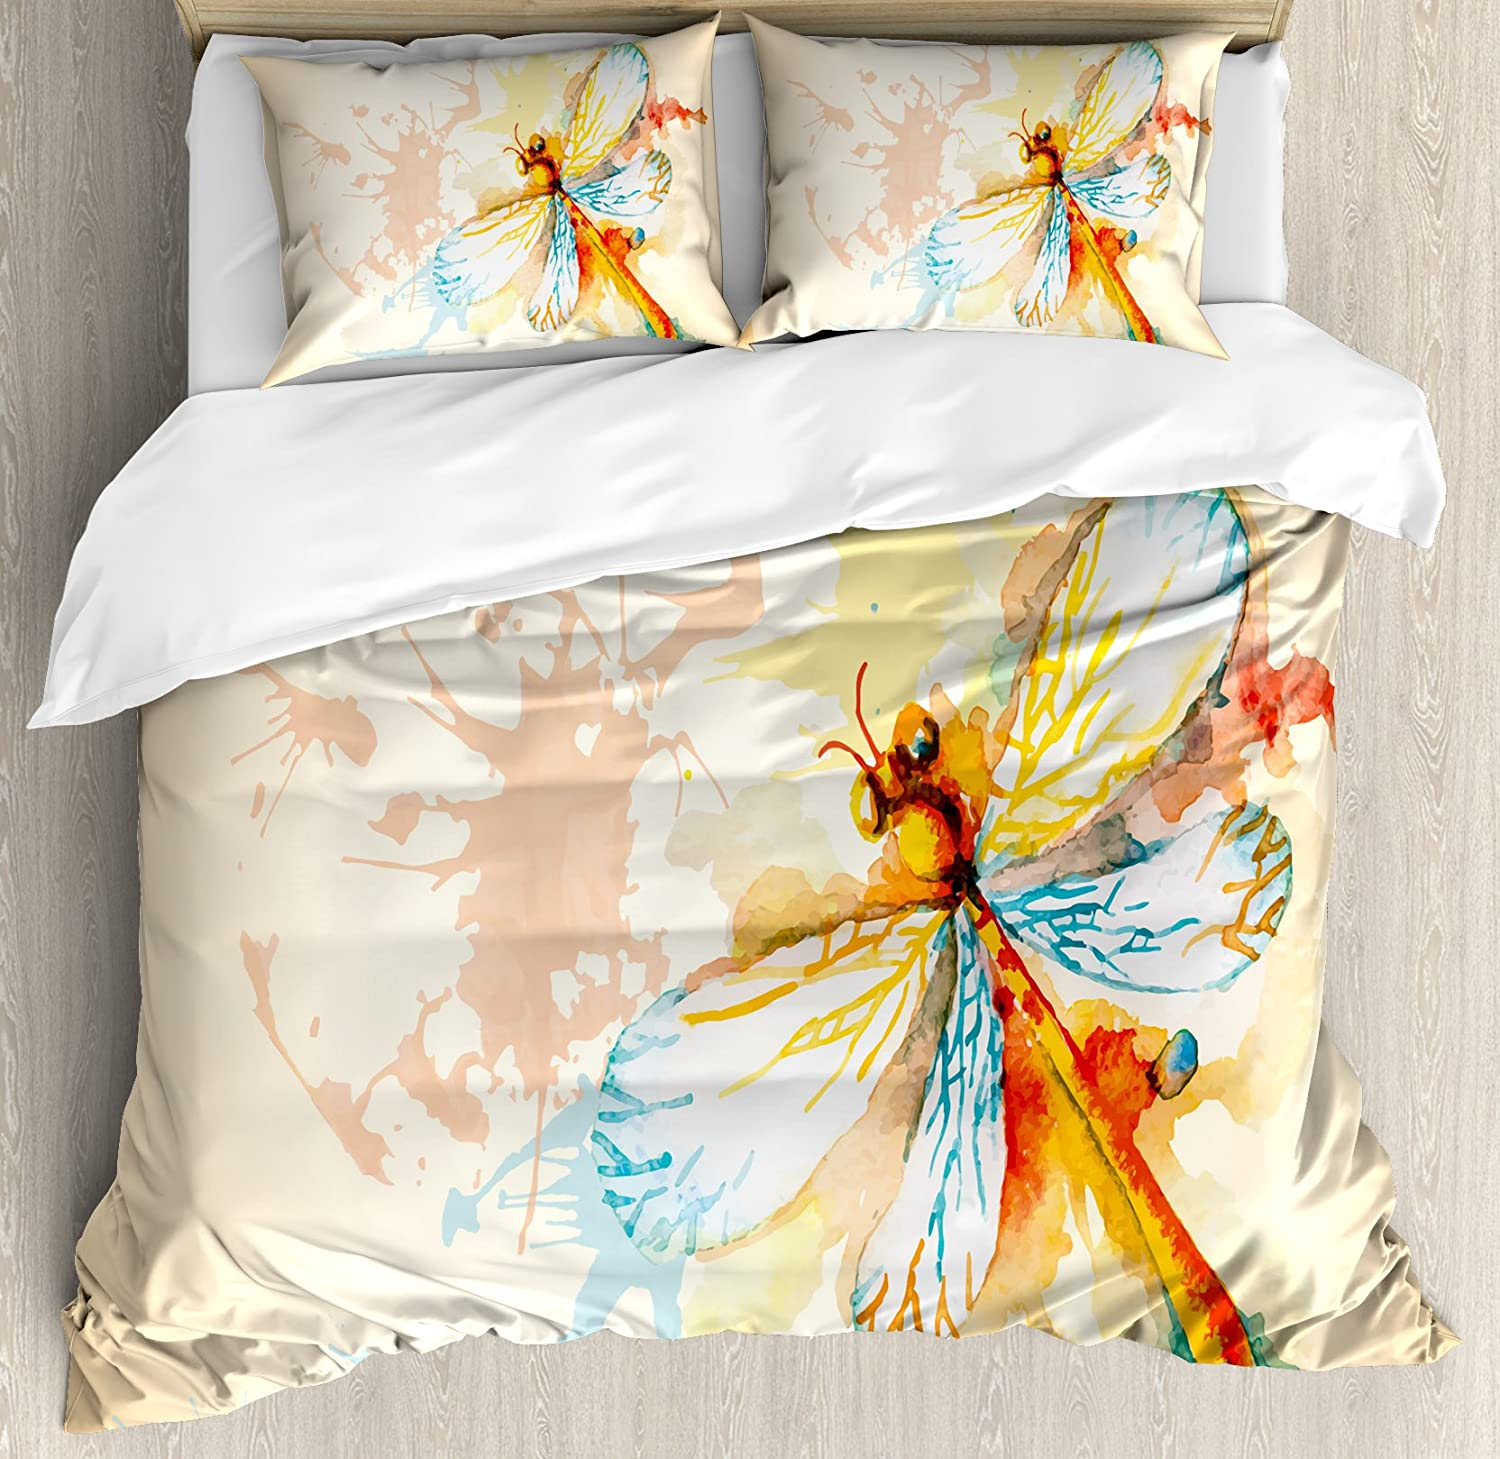 Navy Blue Sand Brown nev/_39895/_queen Ambesonne Map Duvet Cover Set Queen Size Artistic Vintage World Map with Watercolor Brushstrokes on Old Backdrop Print Decorative 3 Piece Bedding Set with 2 Pillow Shams